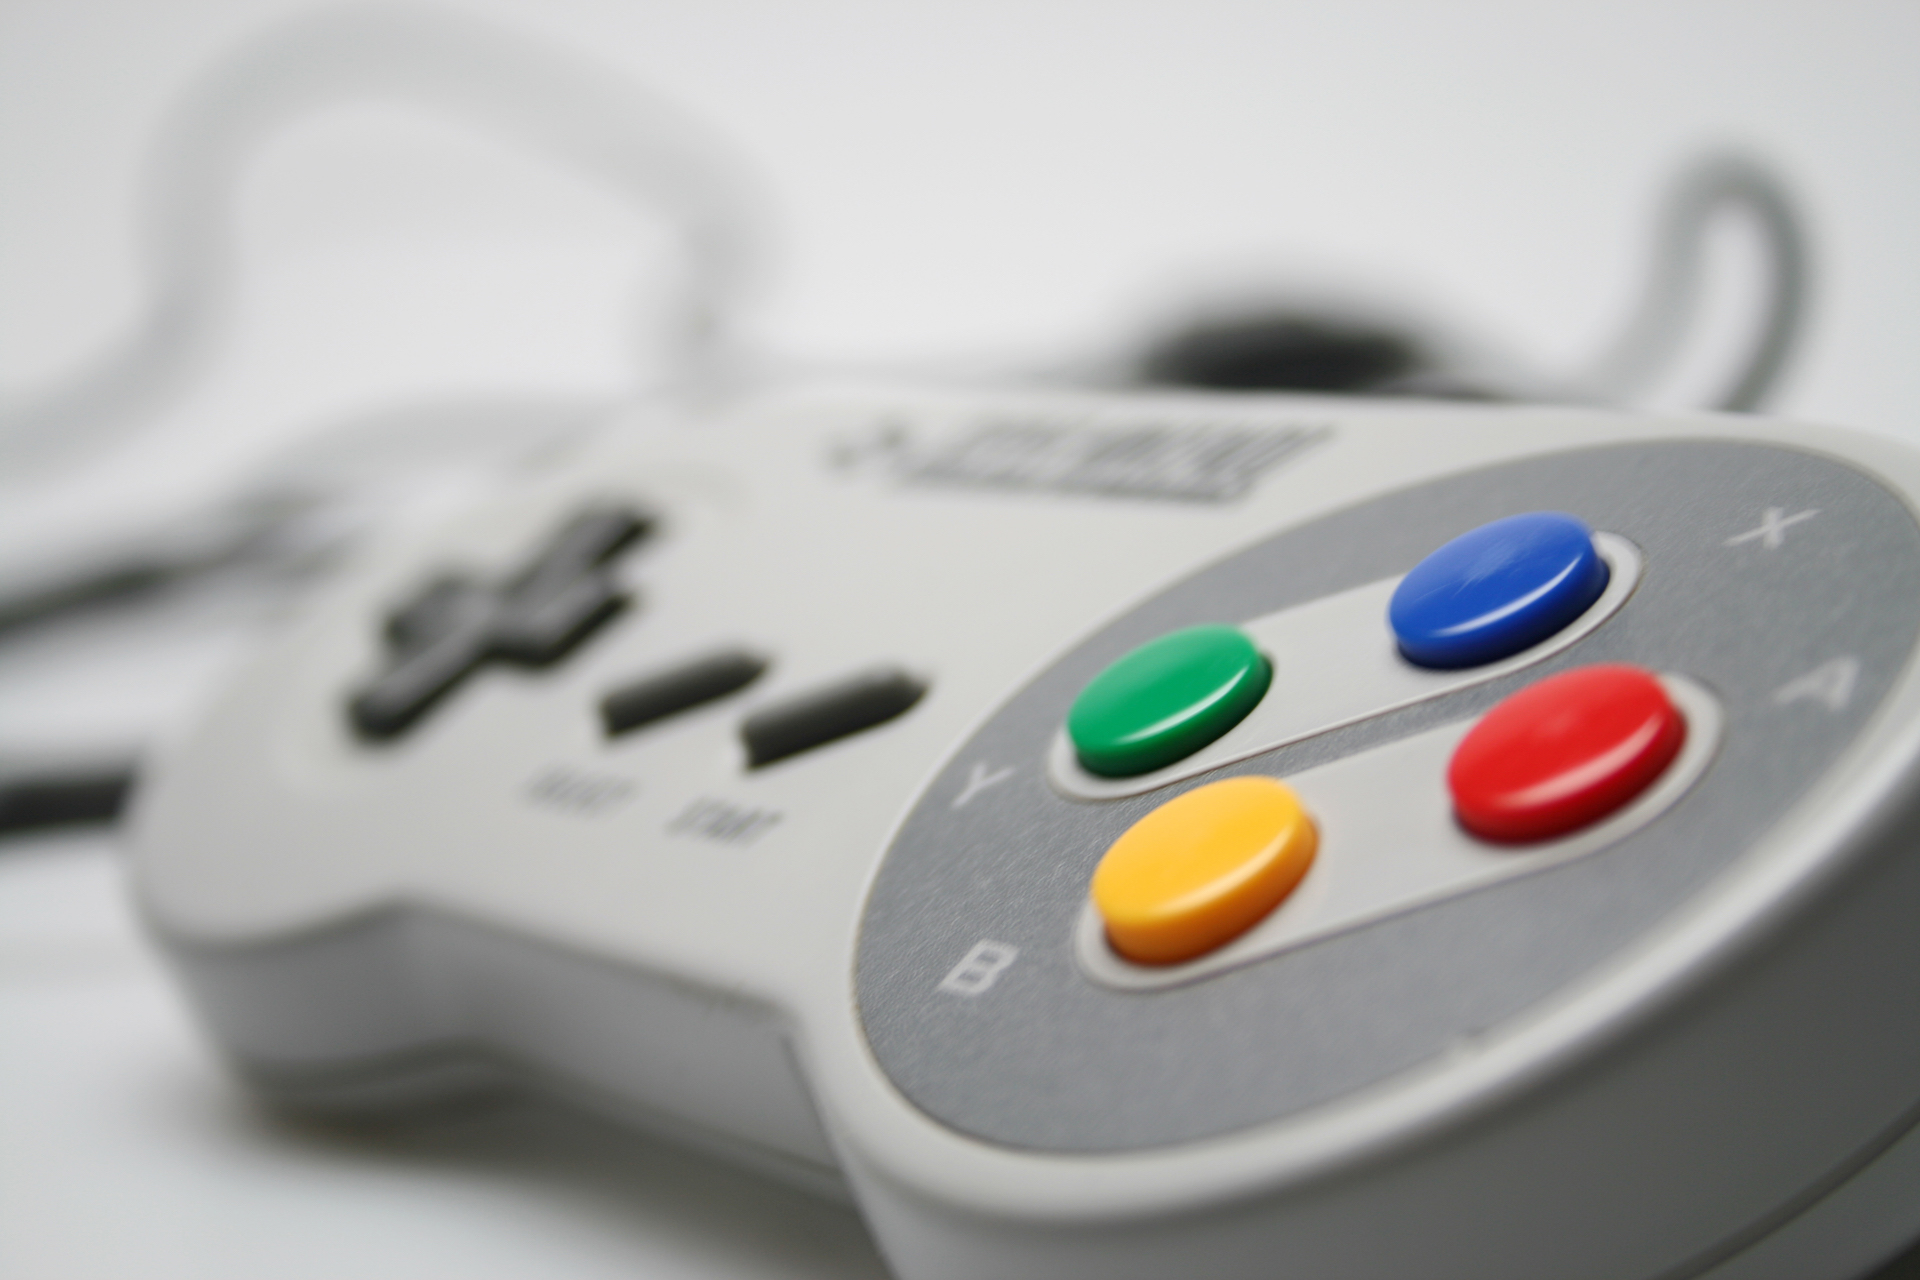 Annunciato il Classic Mini Super Nintendo Entertainment System